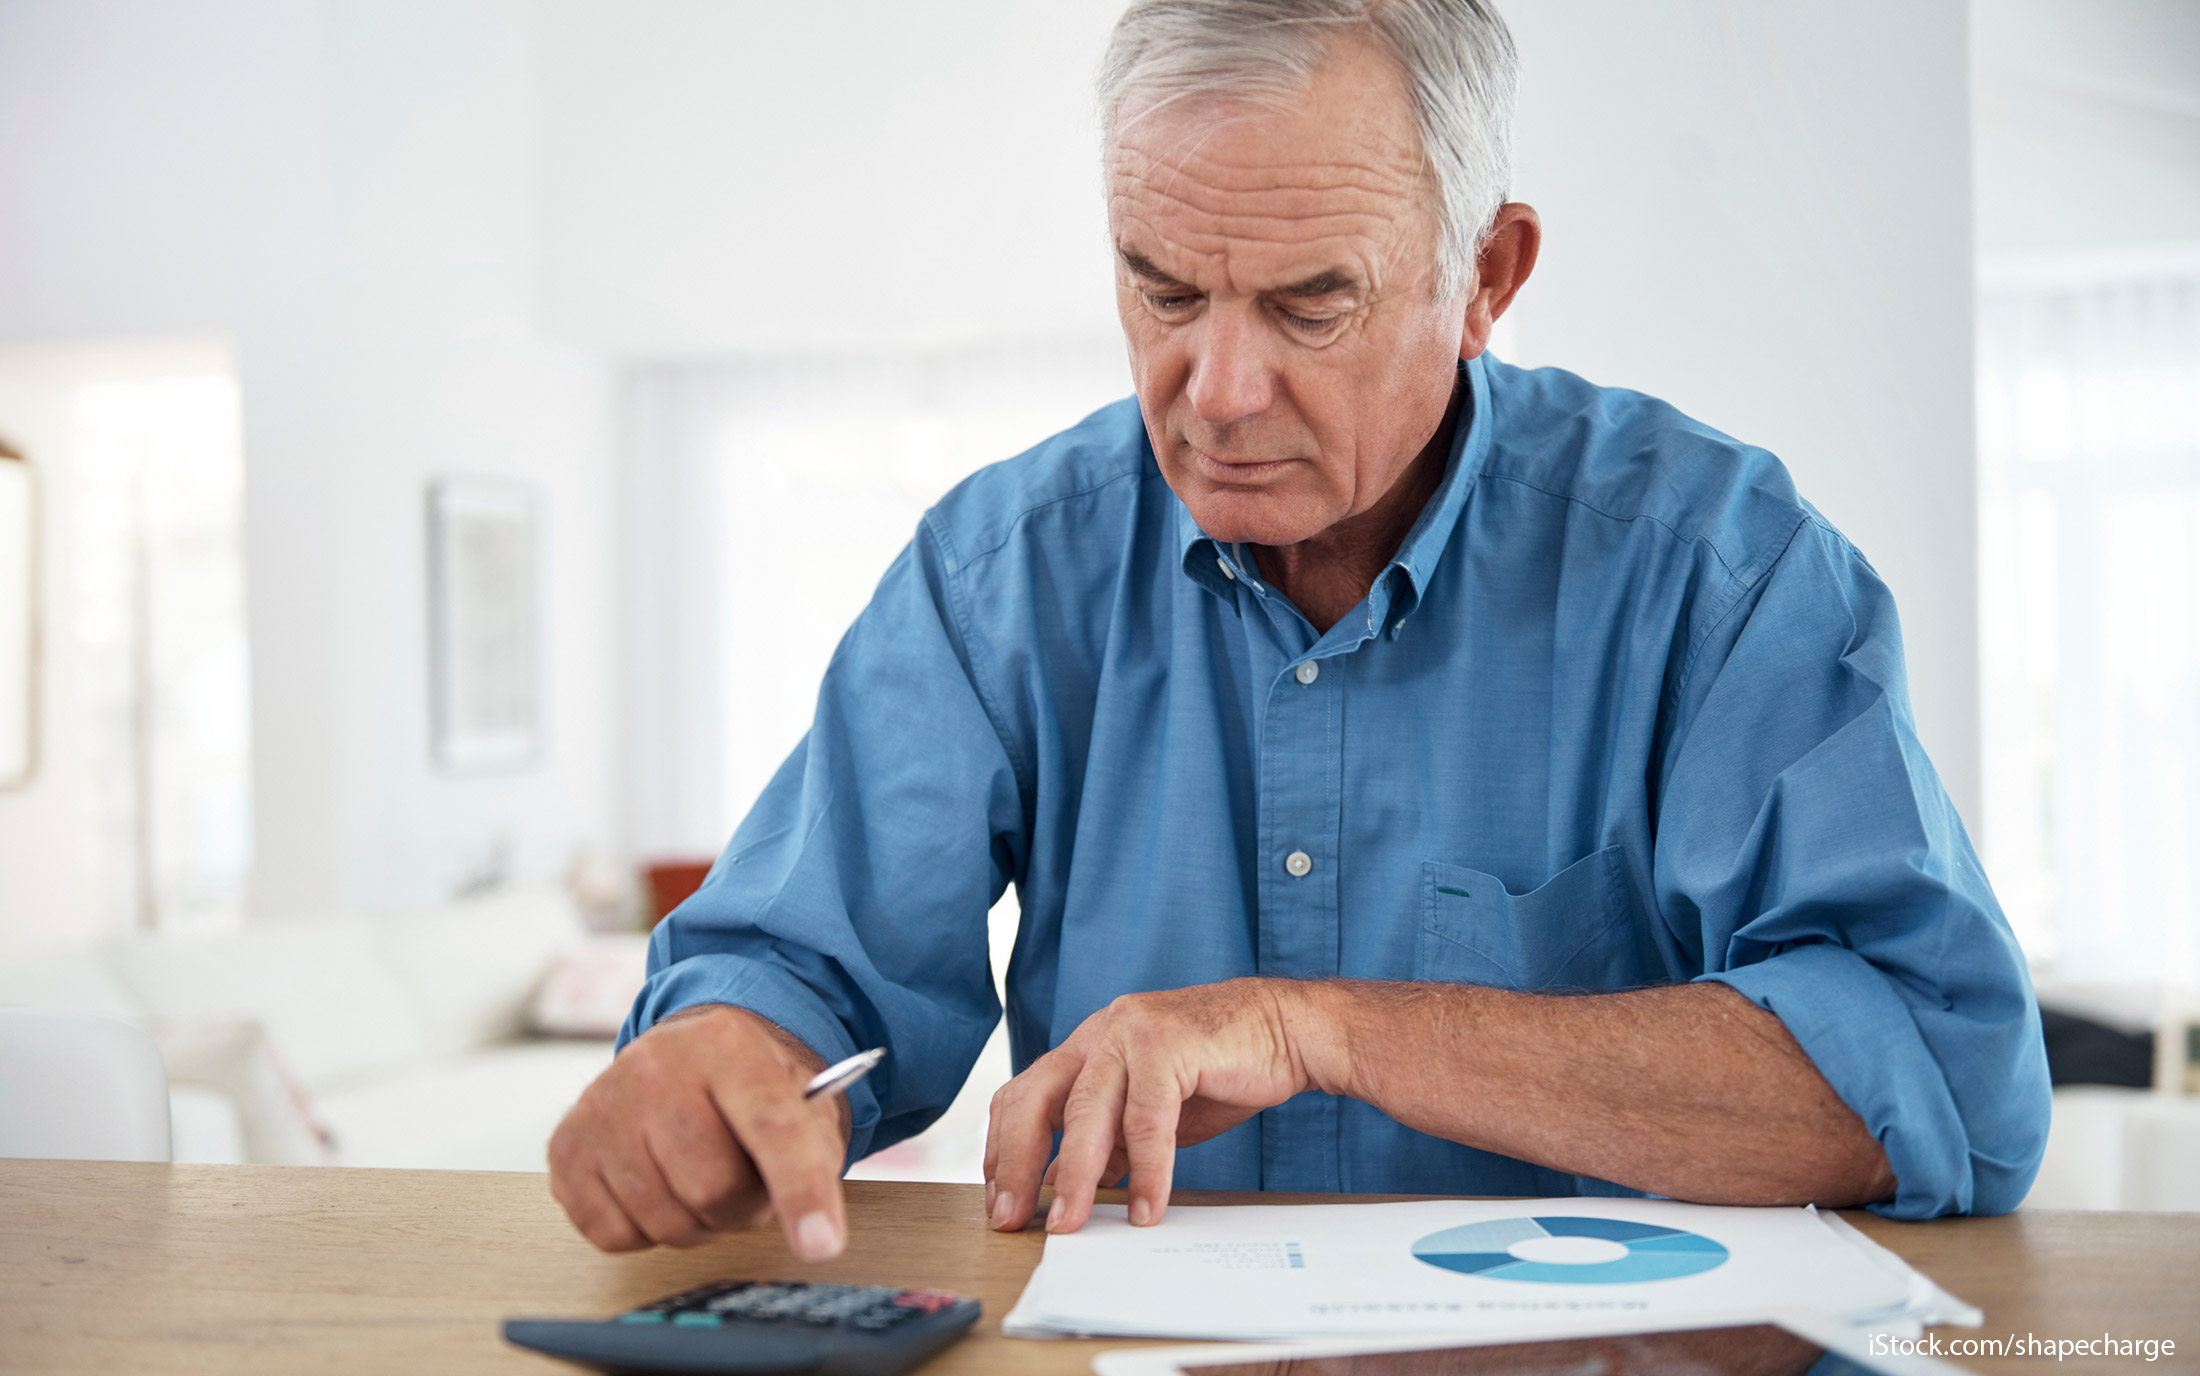 retirement cost-of-living comparison: renting vs. buying a home in